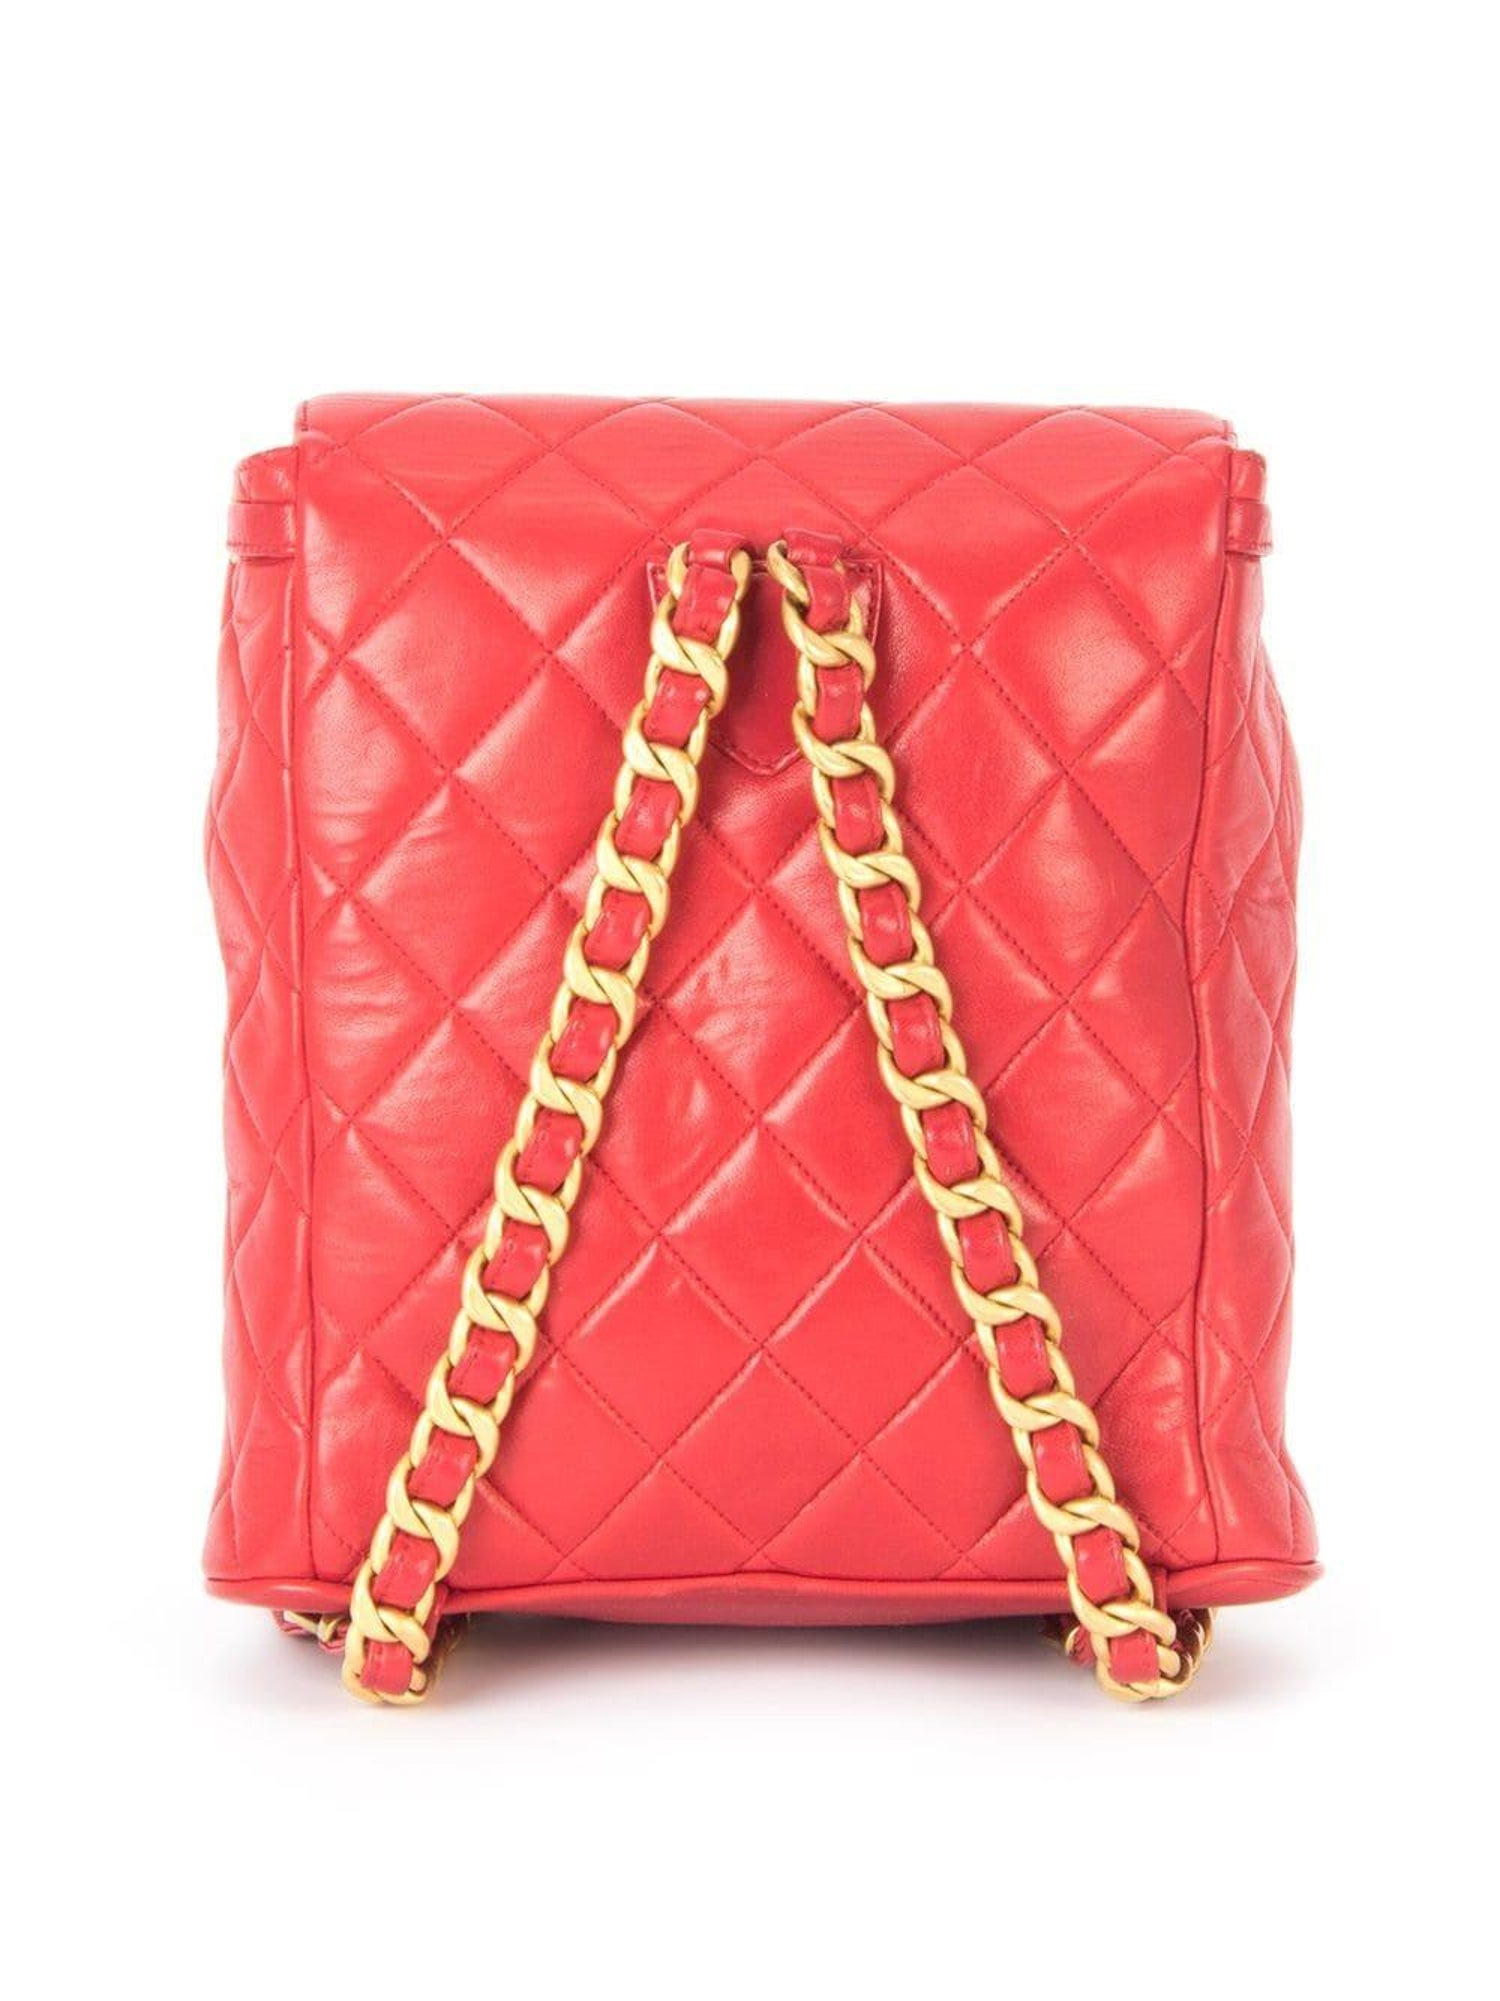 72ad95d898 Chanel Backpack Ultra Rare Duma Vintage Red Lambskin Leather Rucksack For  Sale at 1stdibs